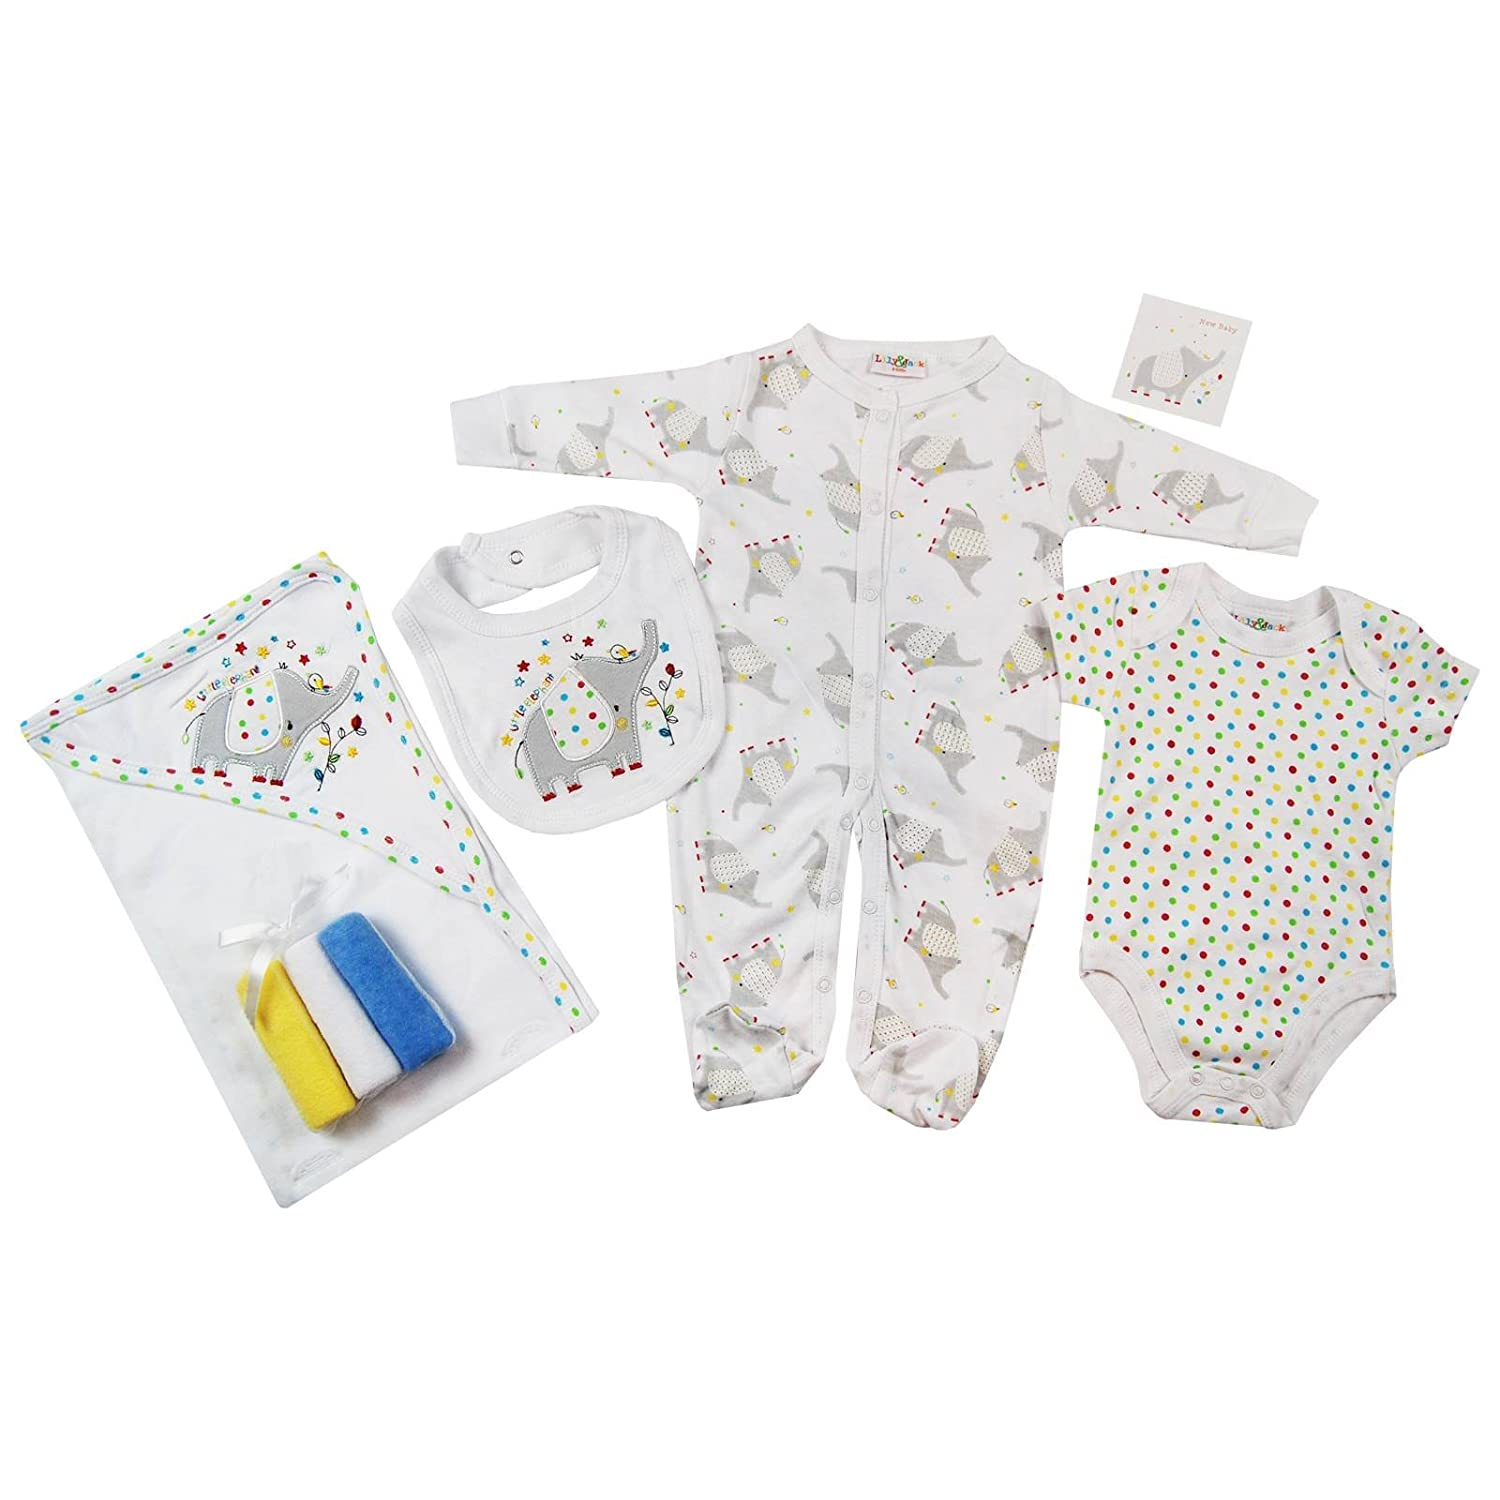 Presents Gifts For Newborn Baby Boys Girls Toddler Unisex Cute Clothing Sets Newborn Outfits Bundles Pack Elephant Animals First Christmas Xmas Christening From Aunty Uncle Grandma